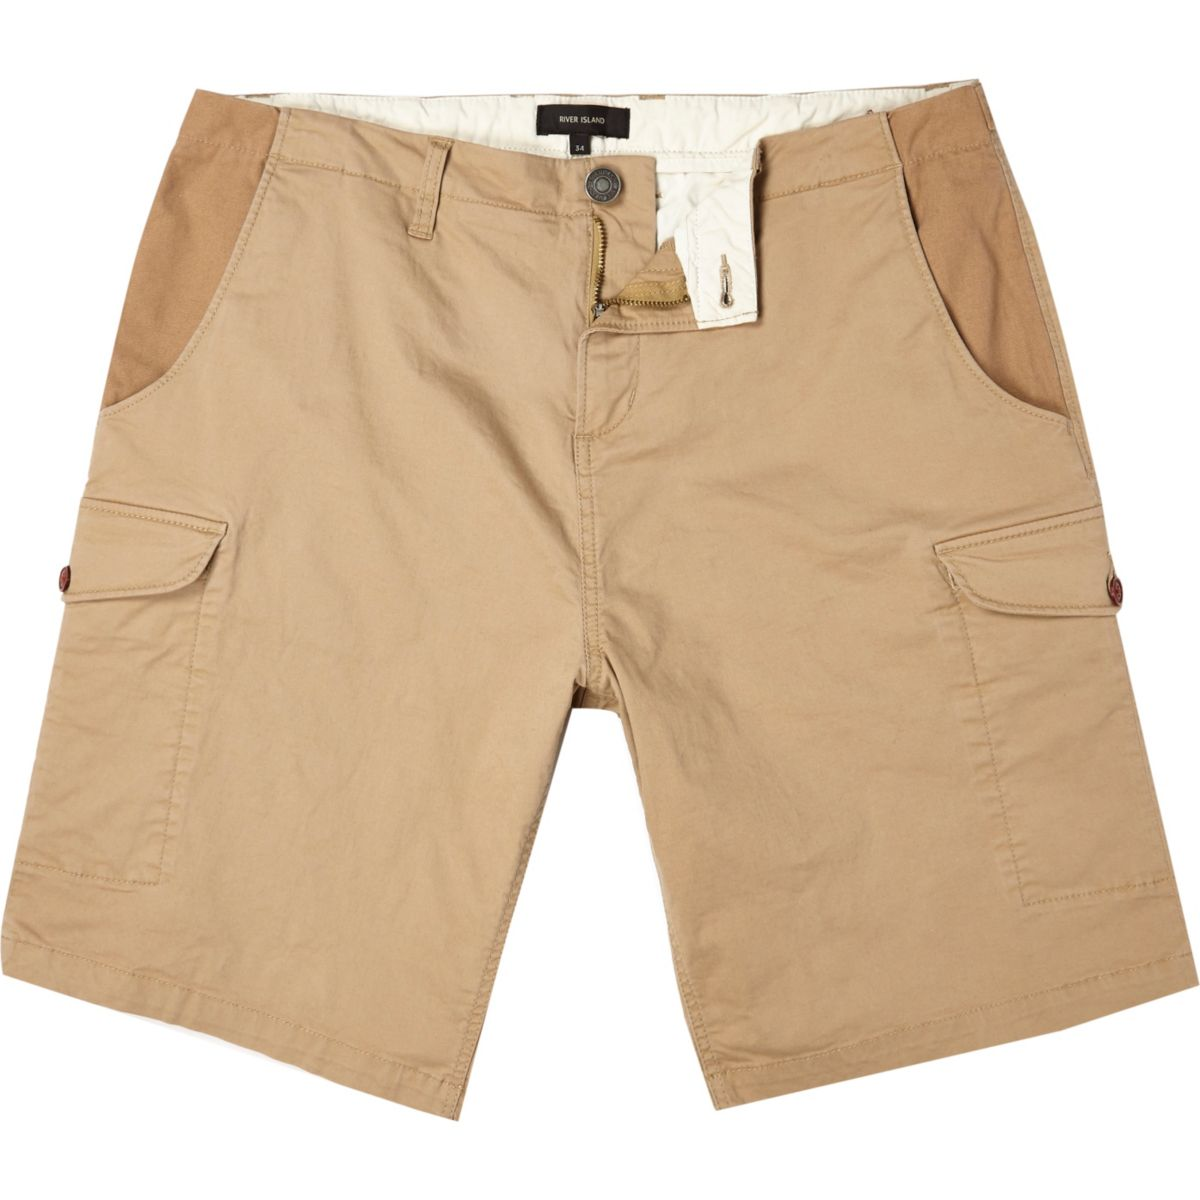 Brown cargo bermuda shorts